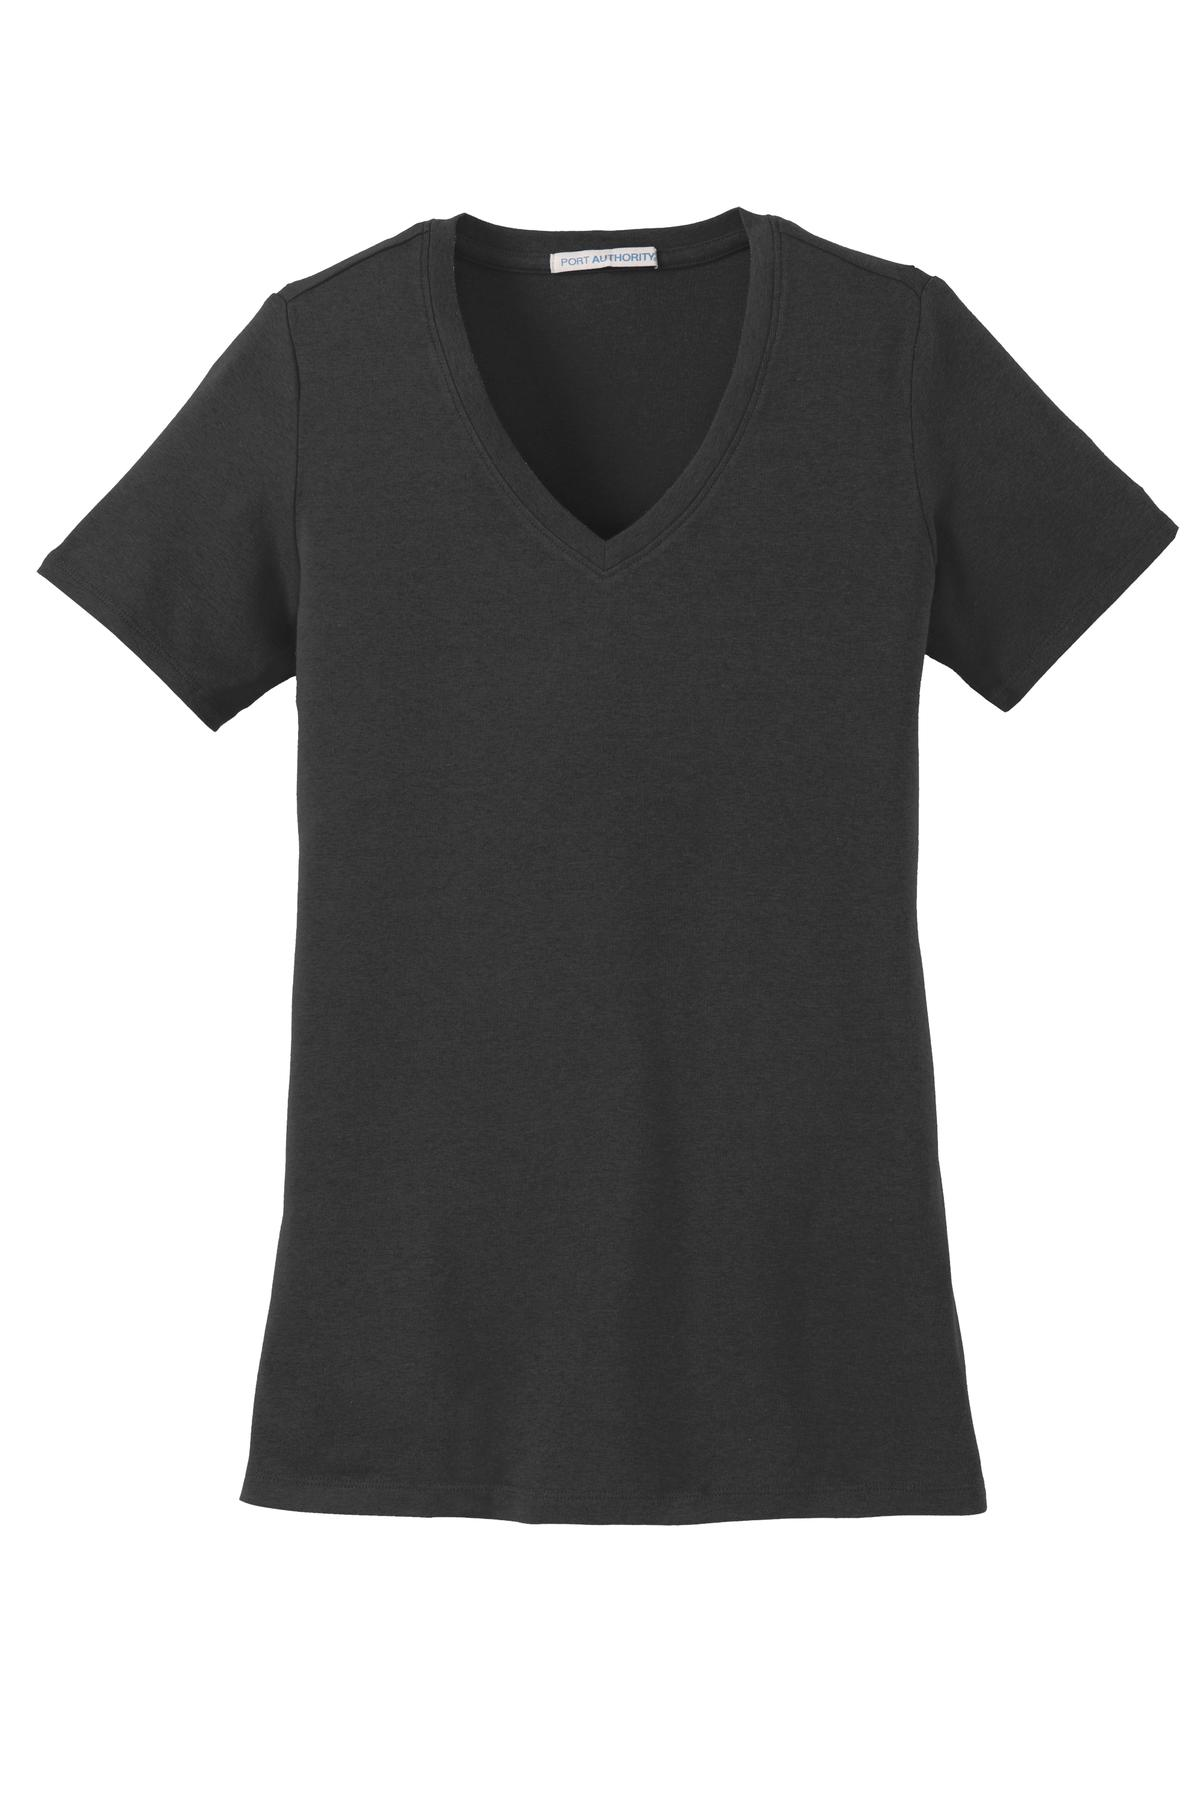 Ladies Concept Stretch V-Neck Tee - RCL4068